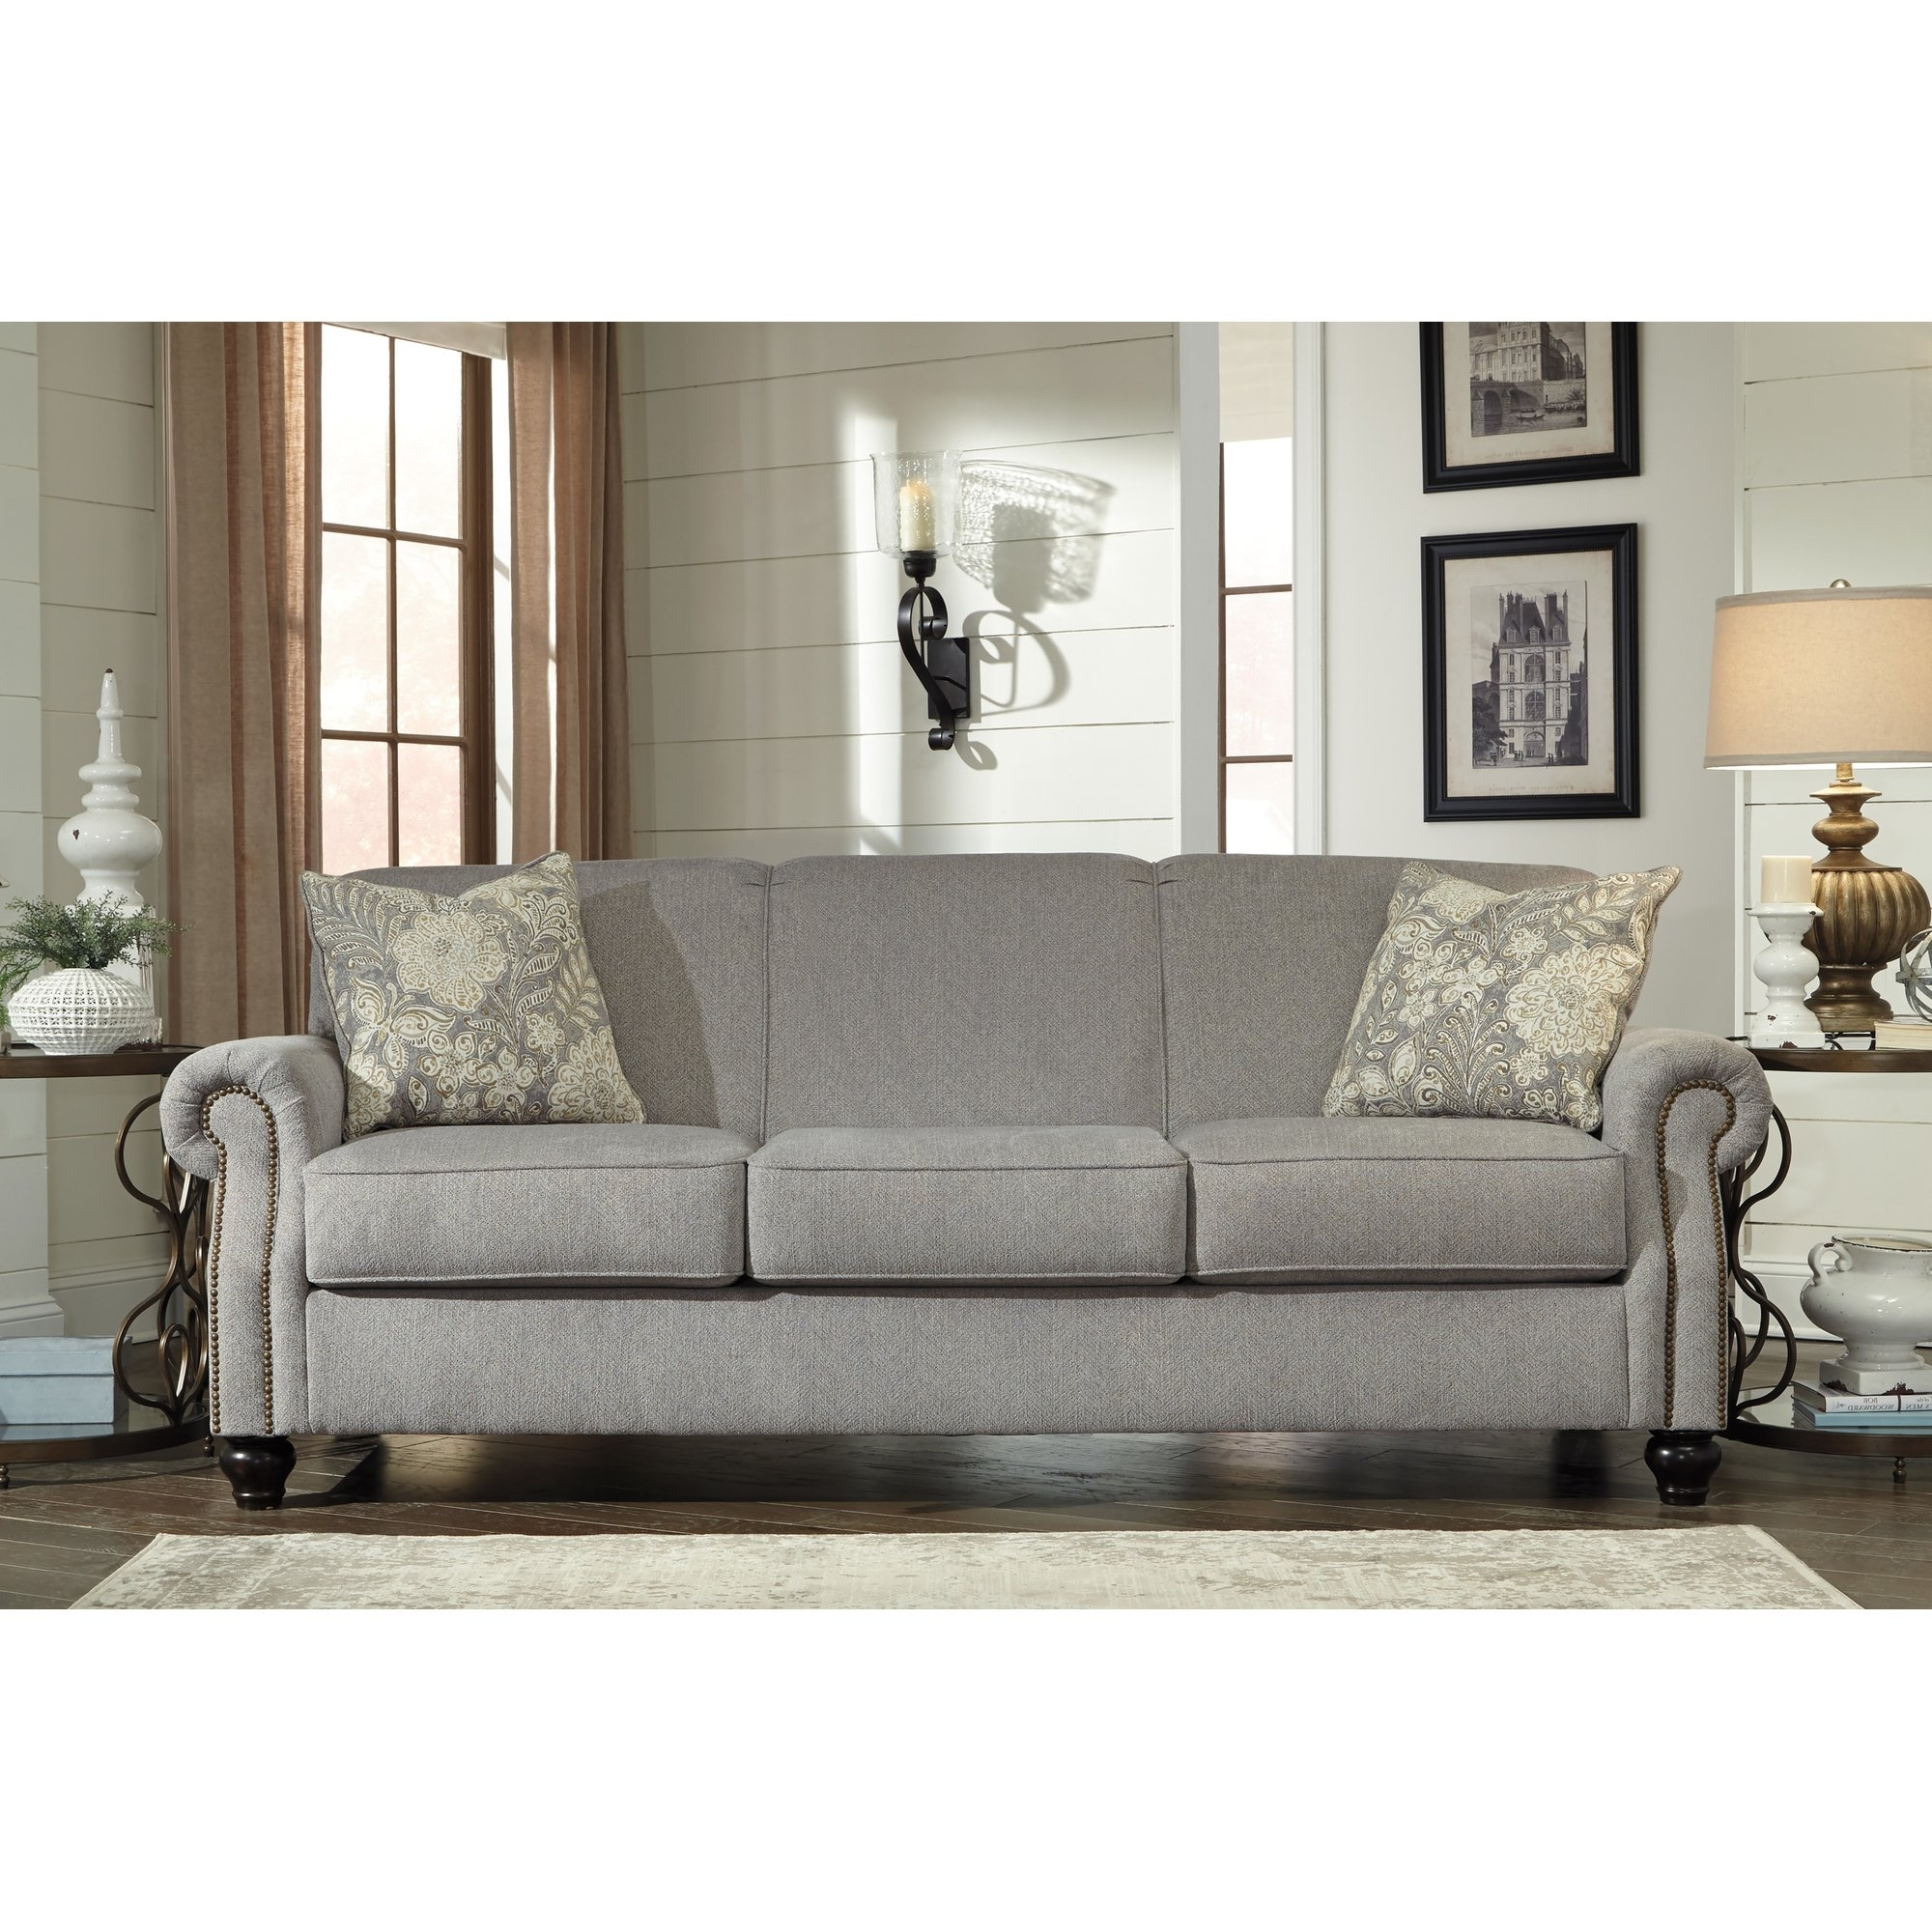 Popular Traditional Sofas Throughout Sofa : Amazing Traditional Sofas On Sale Best Home Design Simple (View 16 of 20)